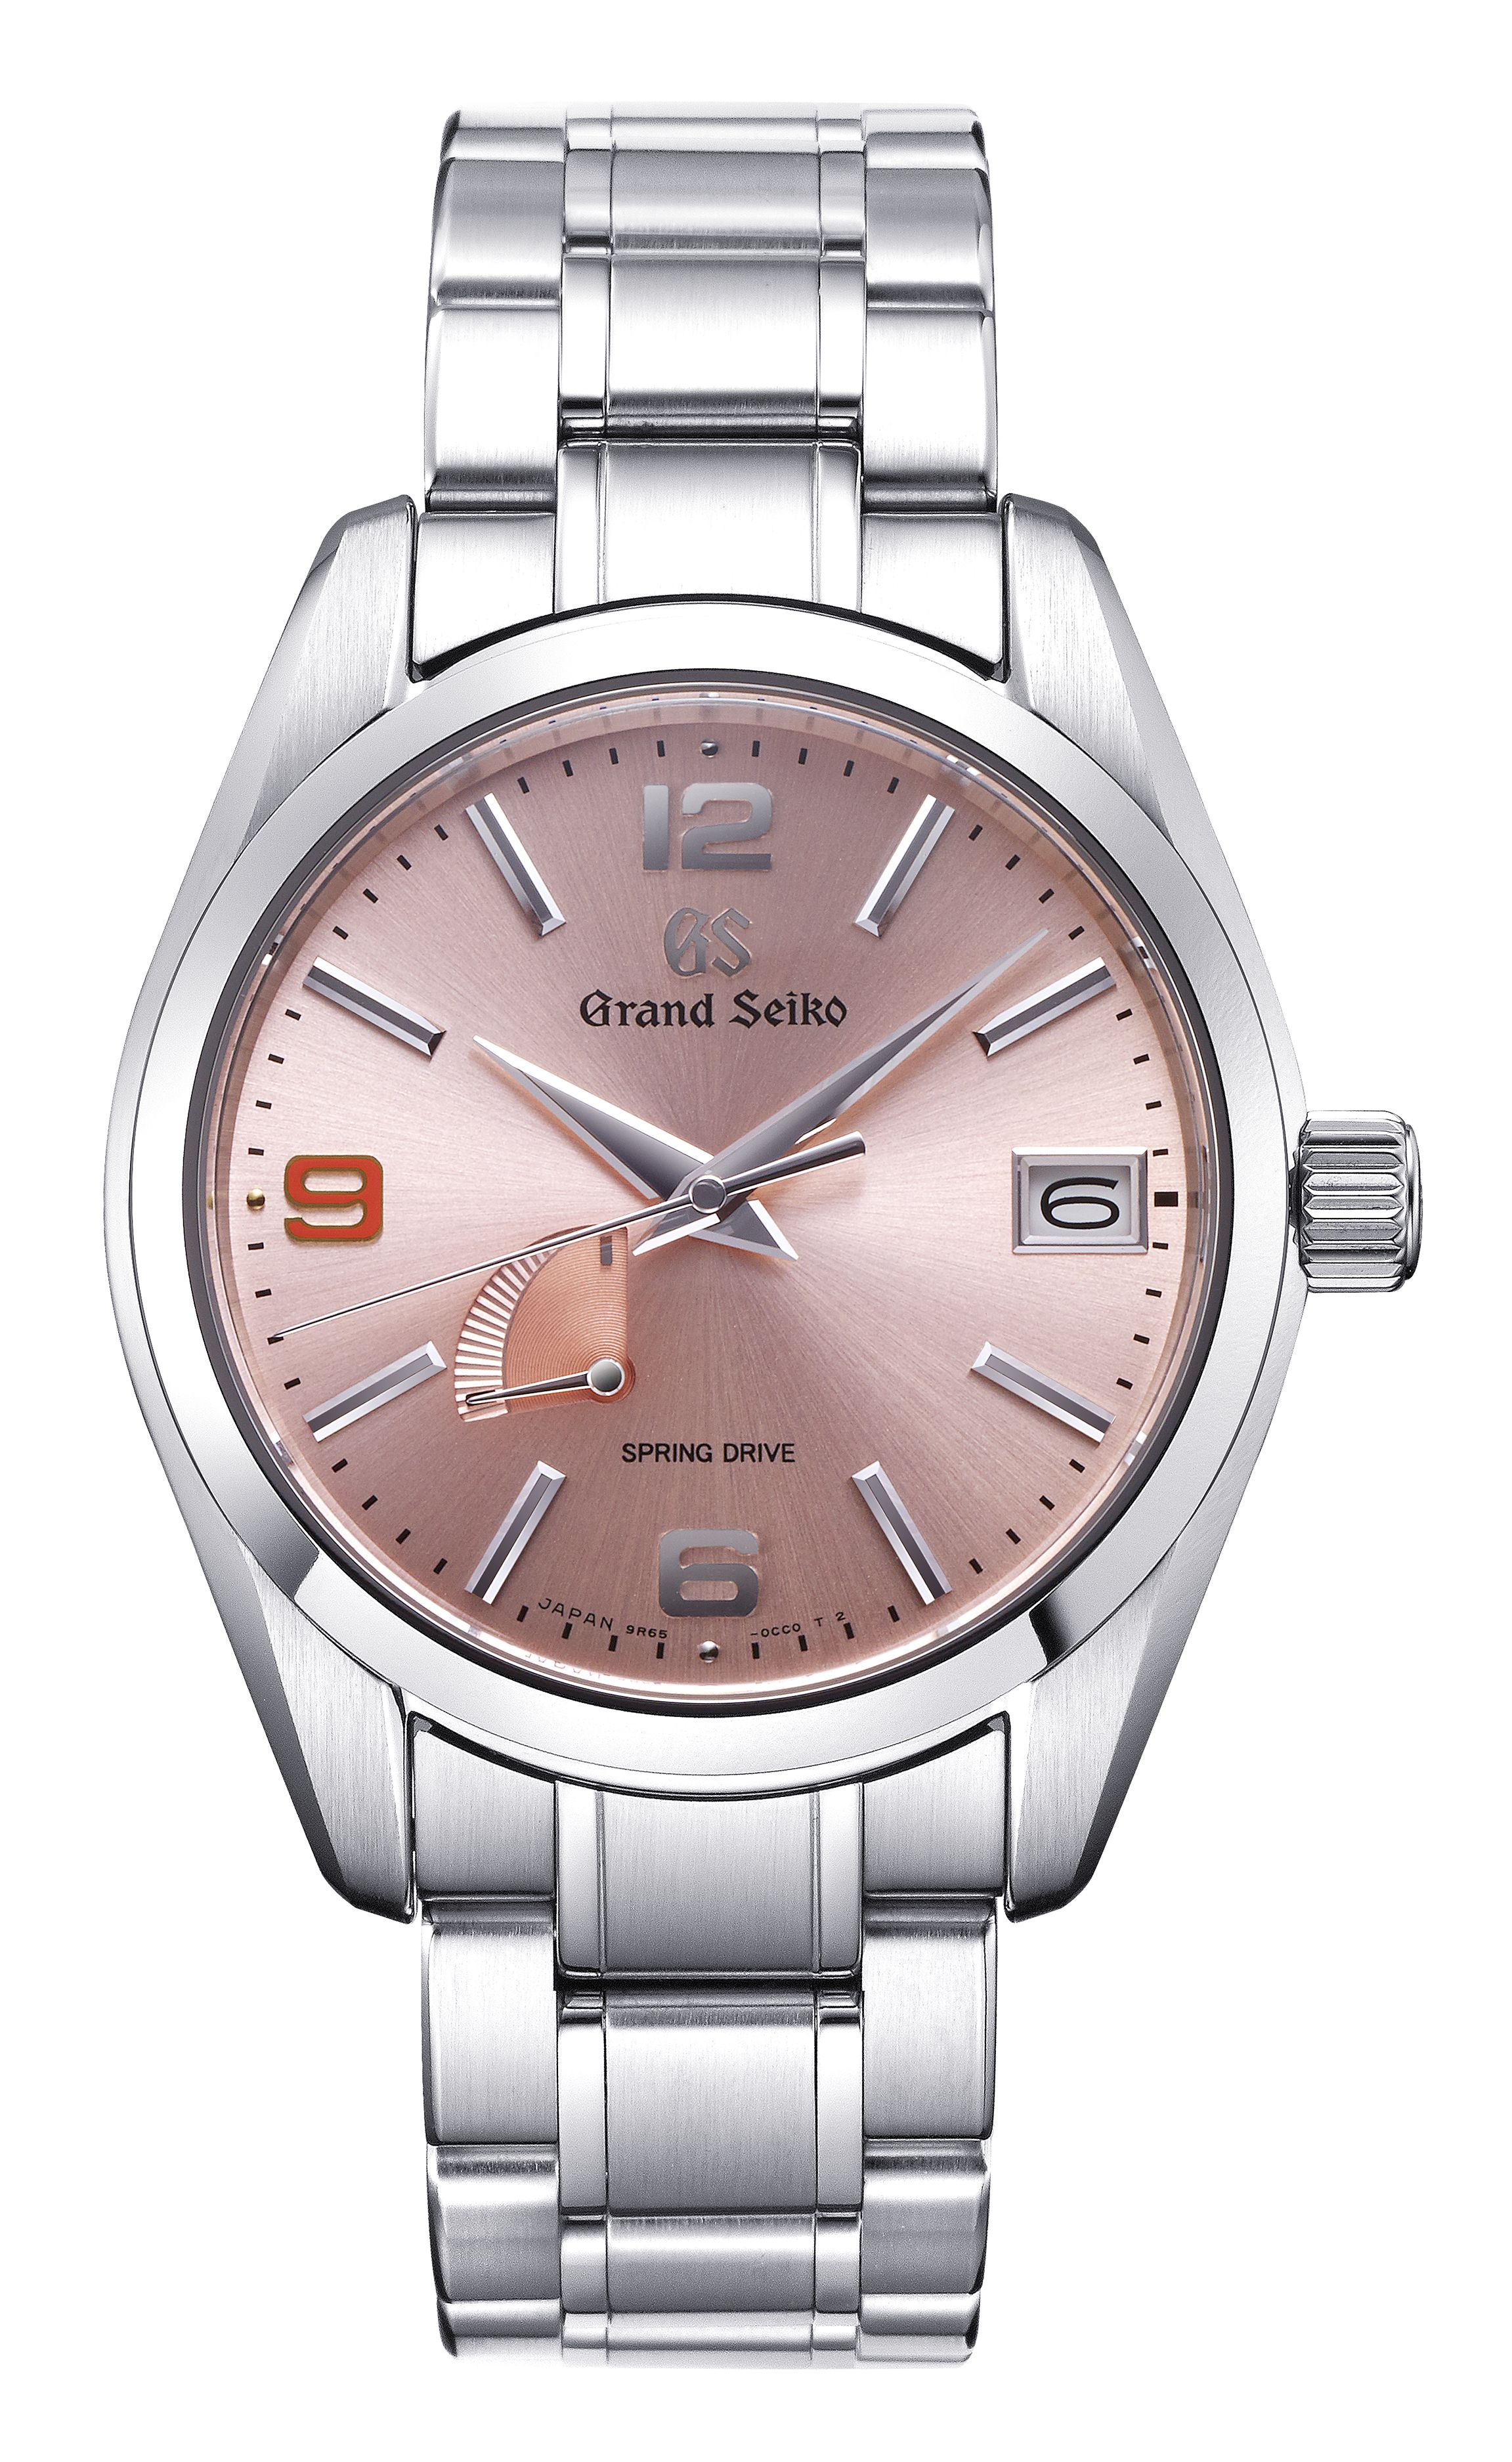 76be752673 Grand Seiko 秋元康氏プロデュース AJHH SPECIAL LIMITED EDITION ...